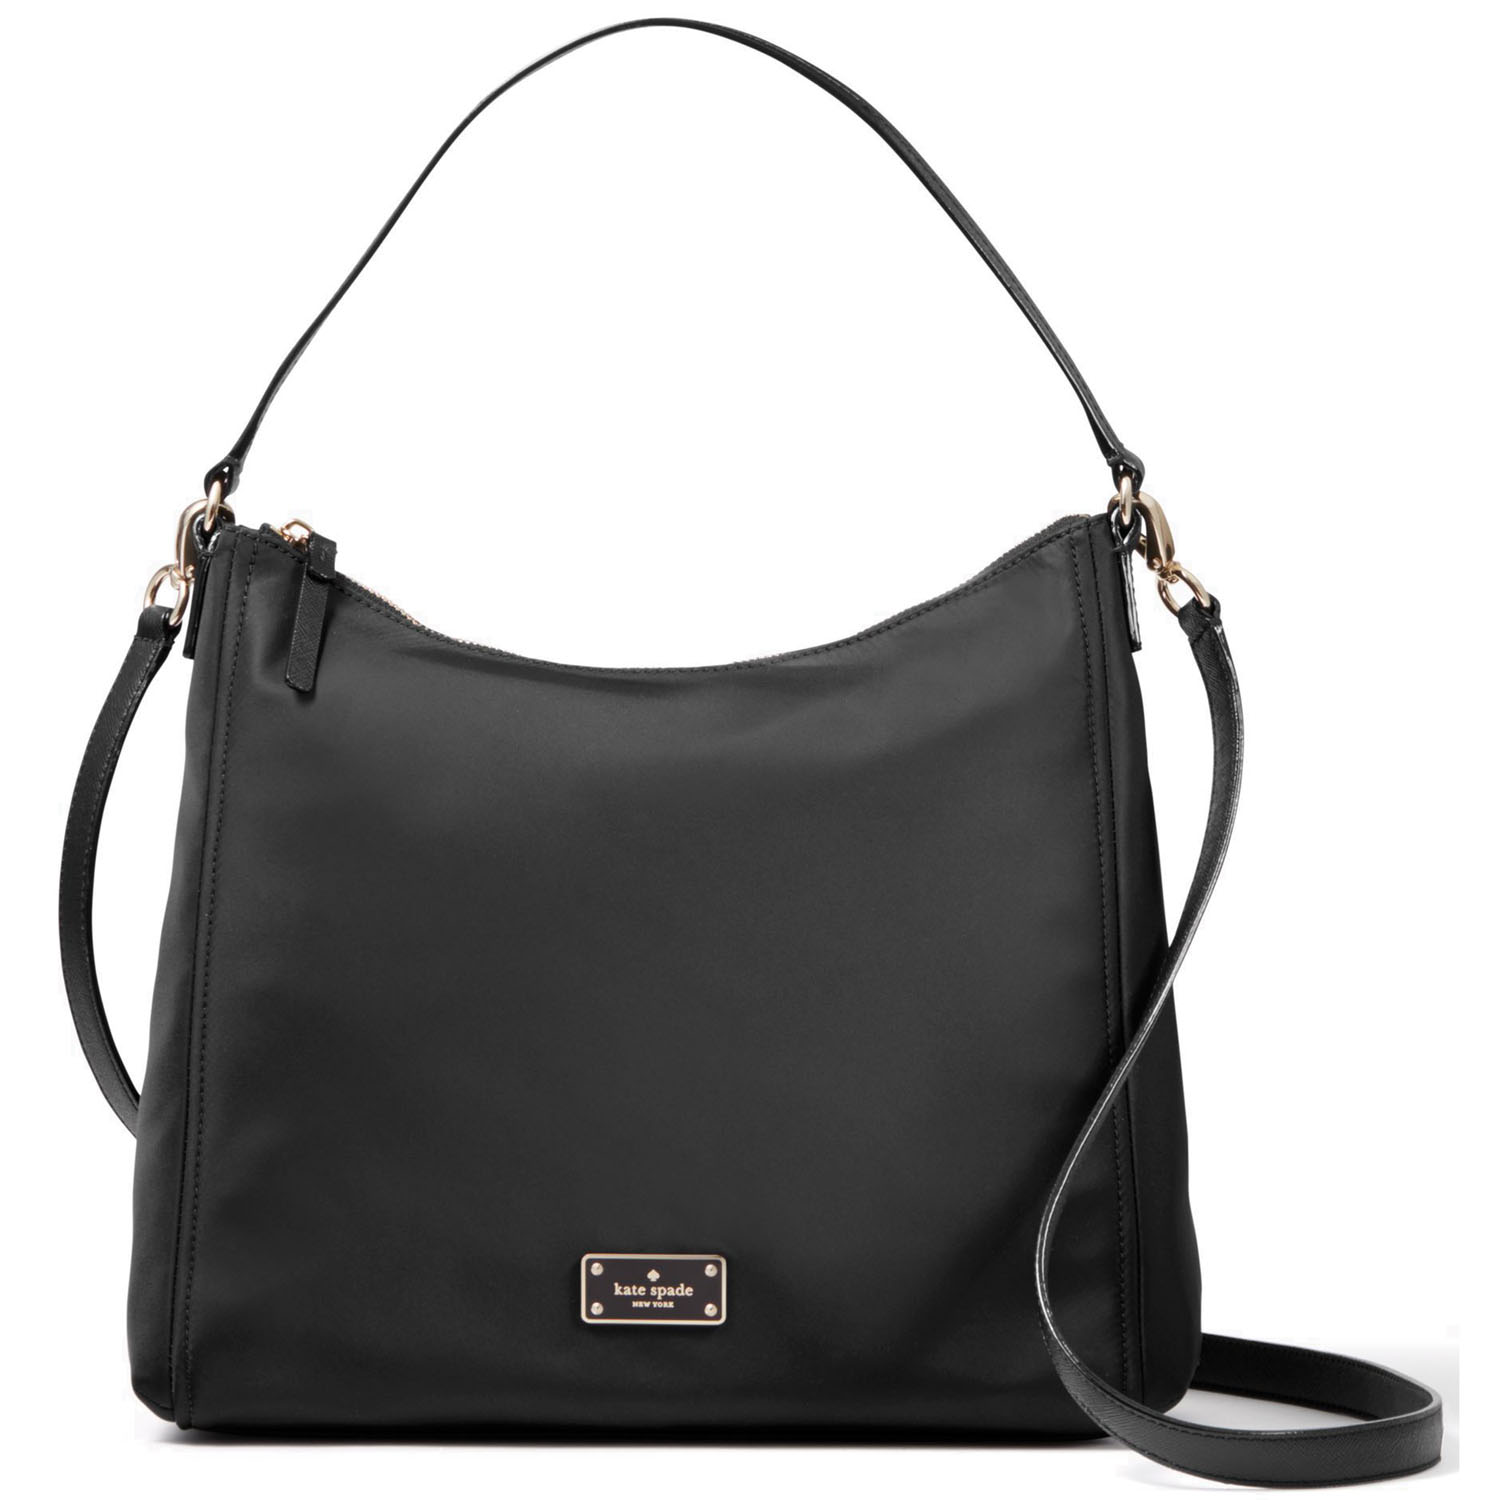 Kate Spade Black Avenue Justyne Crossbody Bag Black # WKRU4060